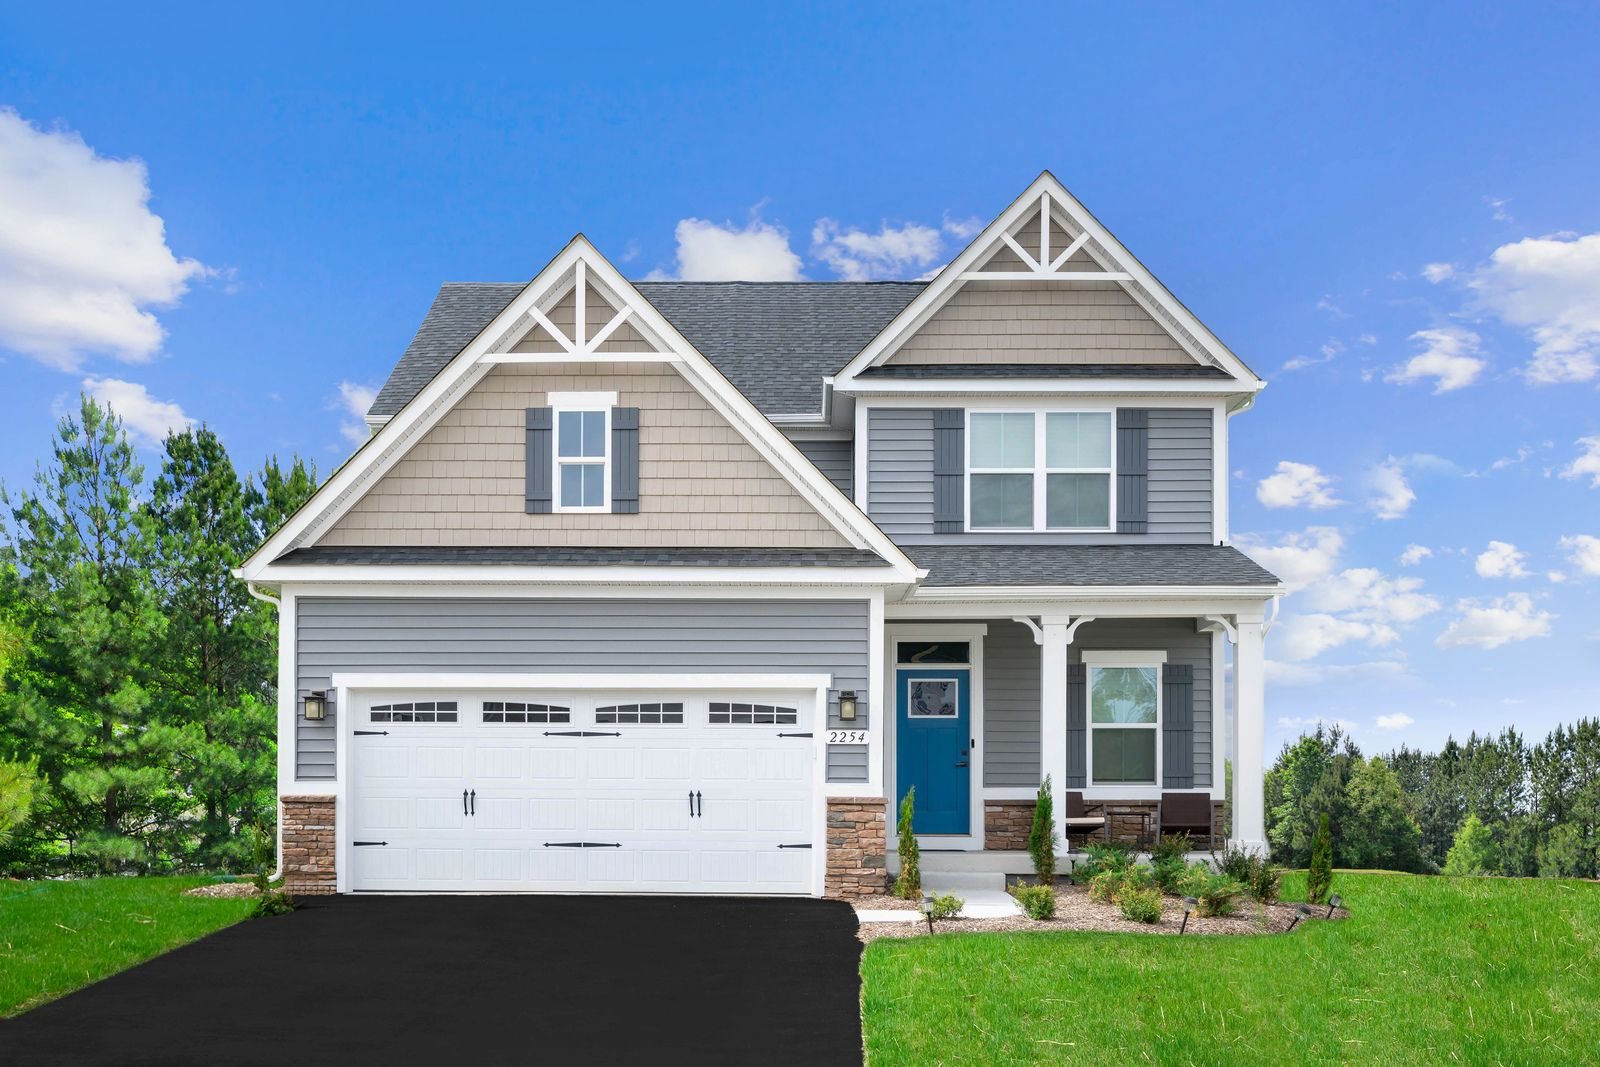 Welcome to Richmont Single-Family Homes:The best priced new single-family homes in the award-winning Fox Chapel School District. Starting from the upper $300s. Click hereto schedule an appointment.